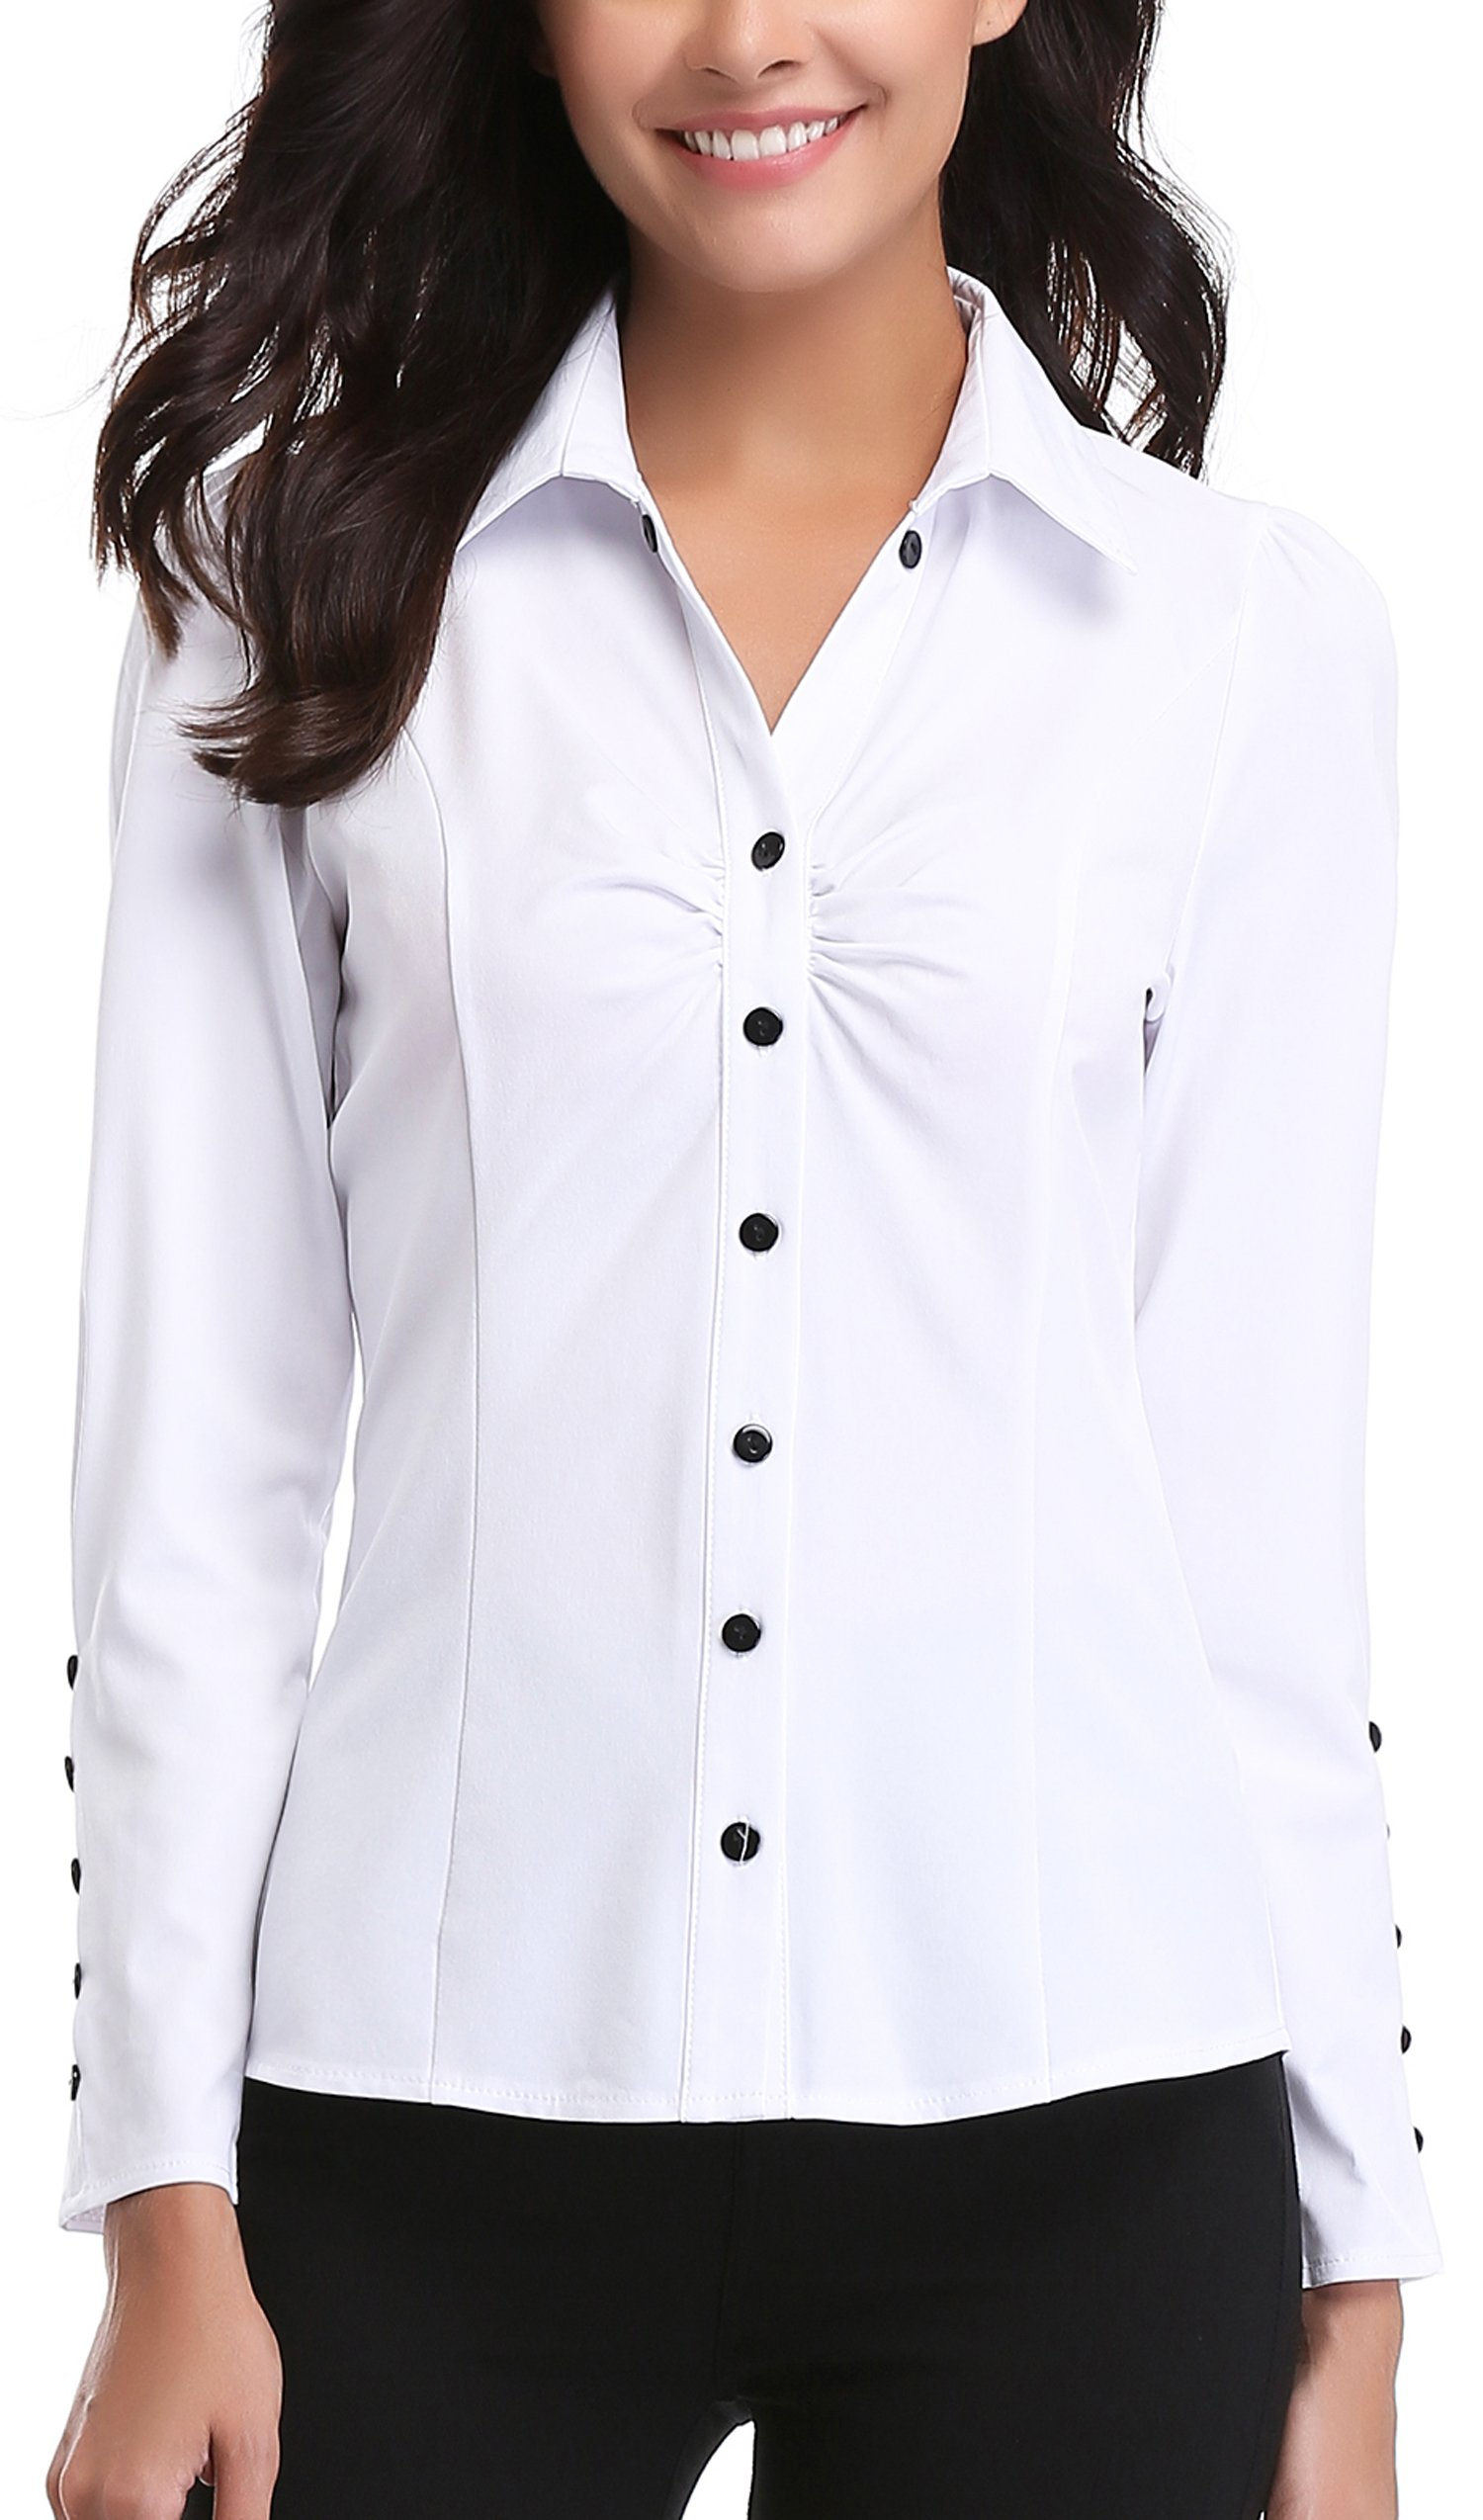 MISS MOLY Women's White Button Down Shirt V Neck Collar Puff Sleeve Office M by MISS MOLY (Image #5)